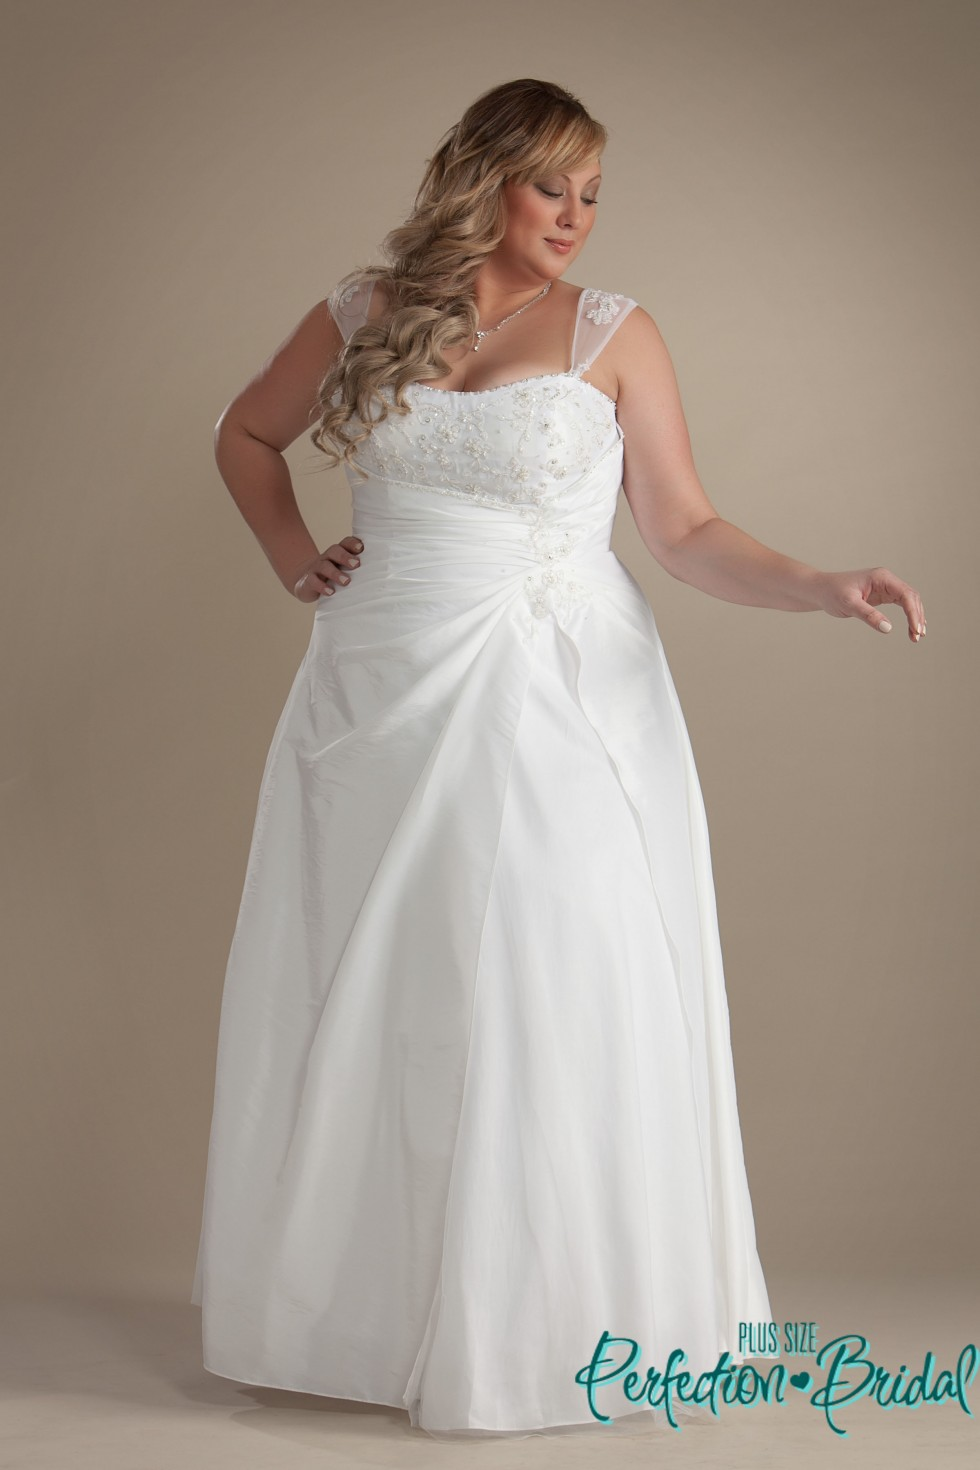 Plus size wedding dresses australia cheap eligent prom for Discount plus size wedding dresses